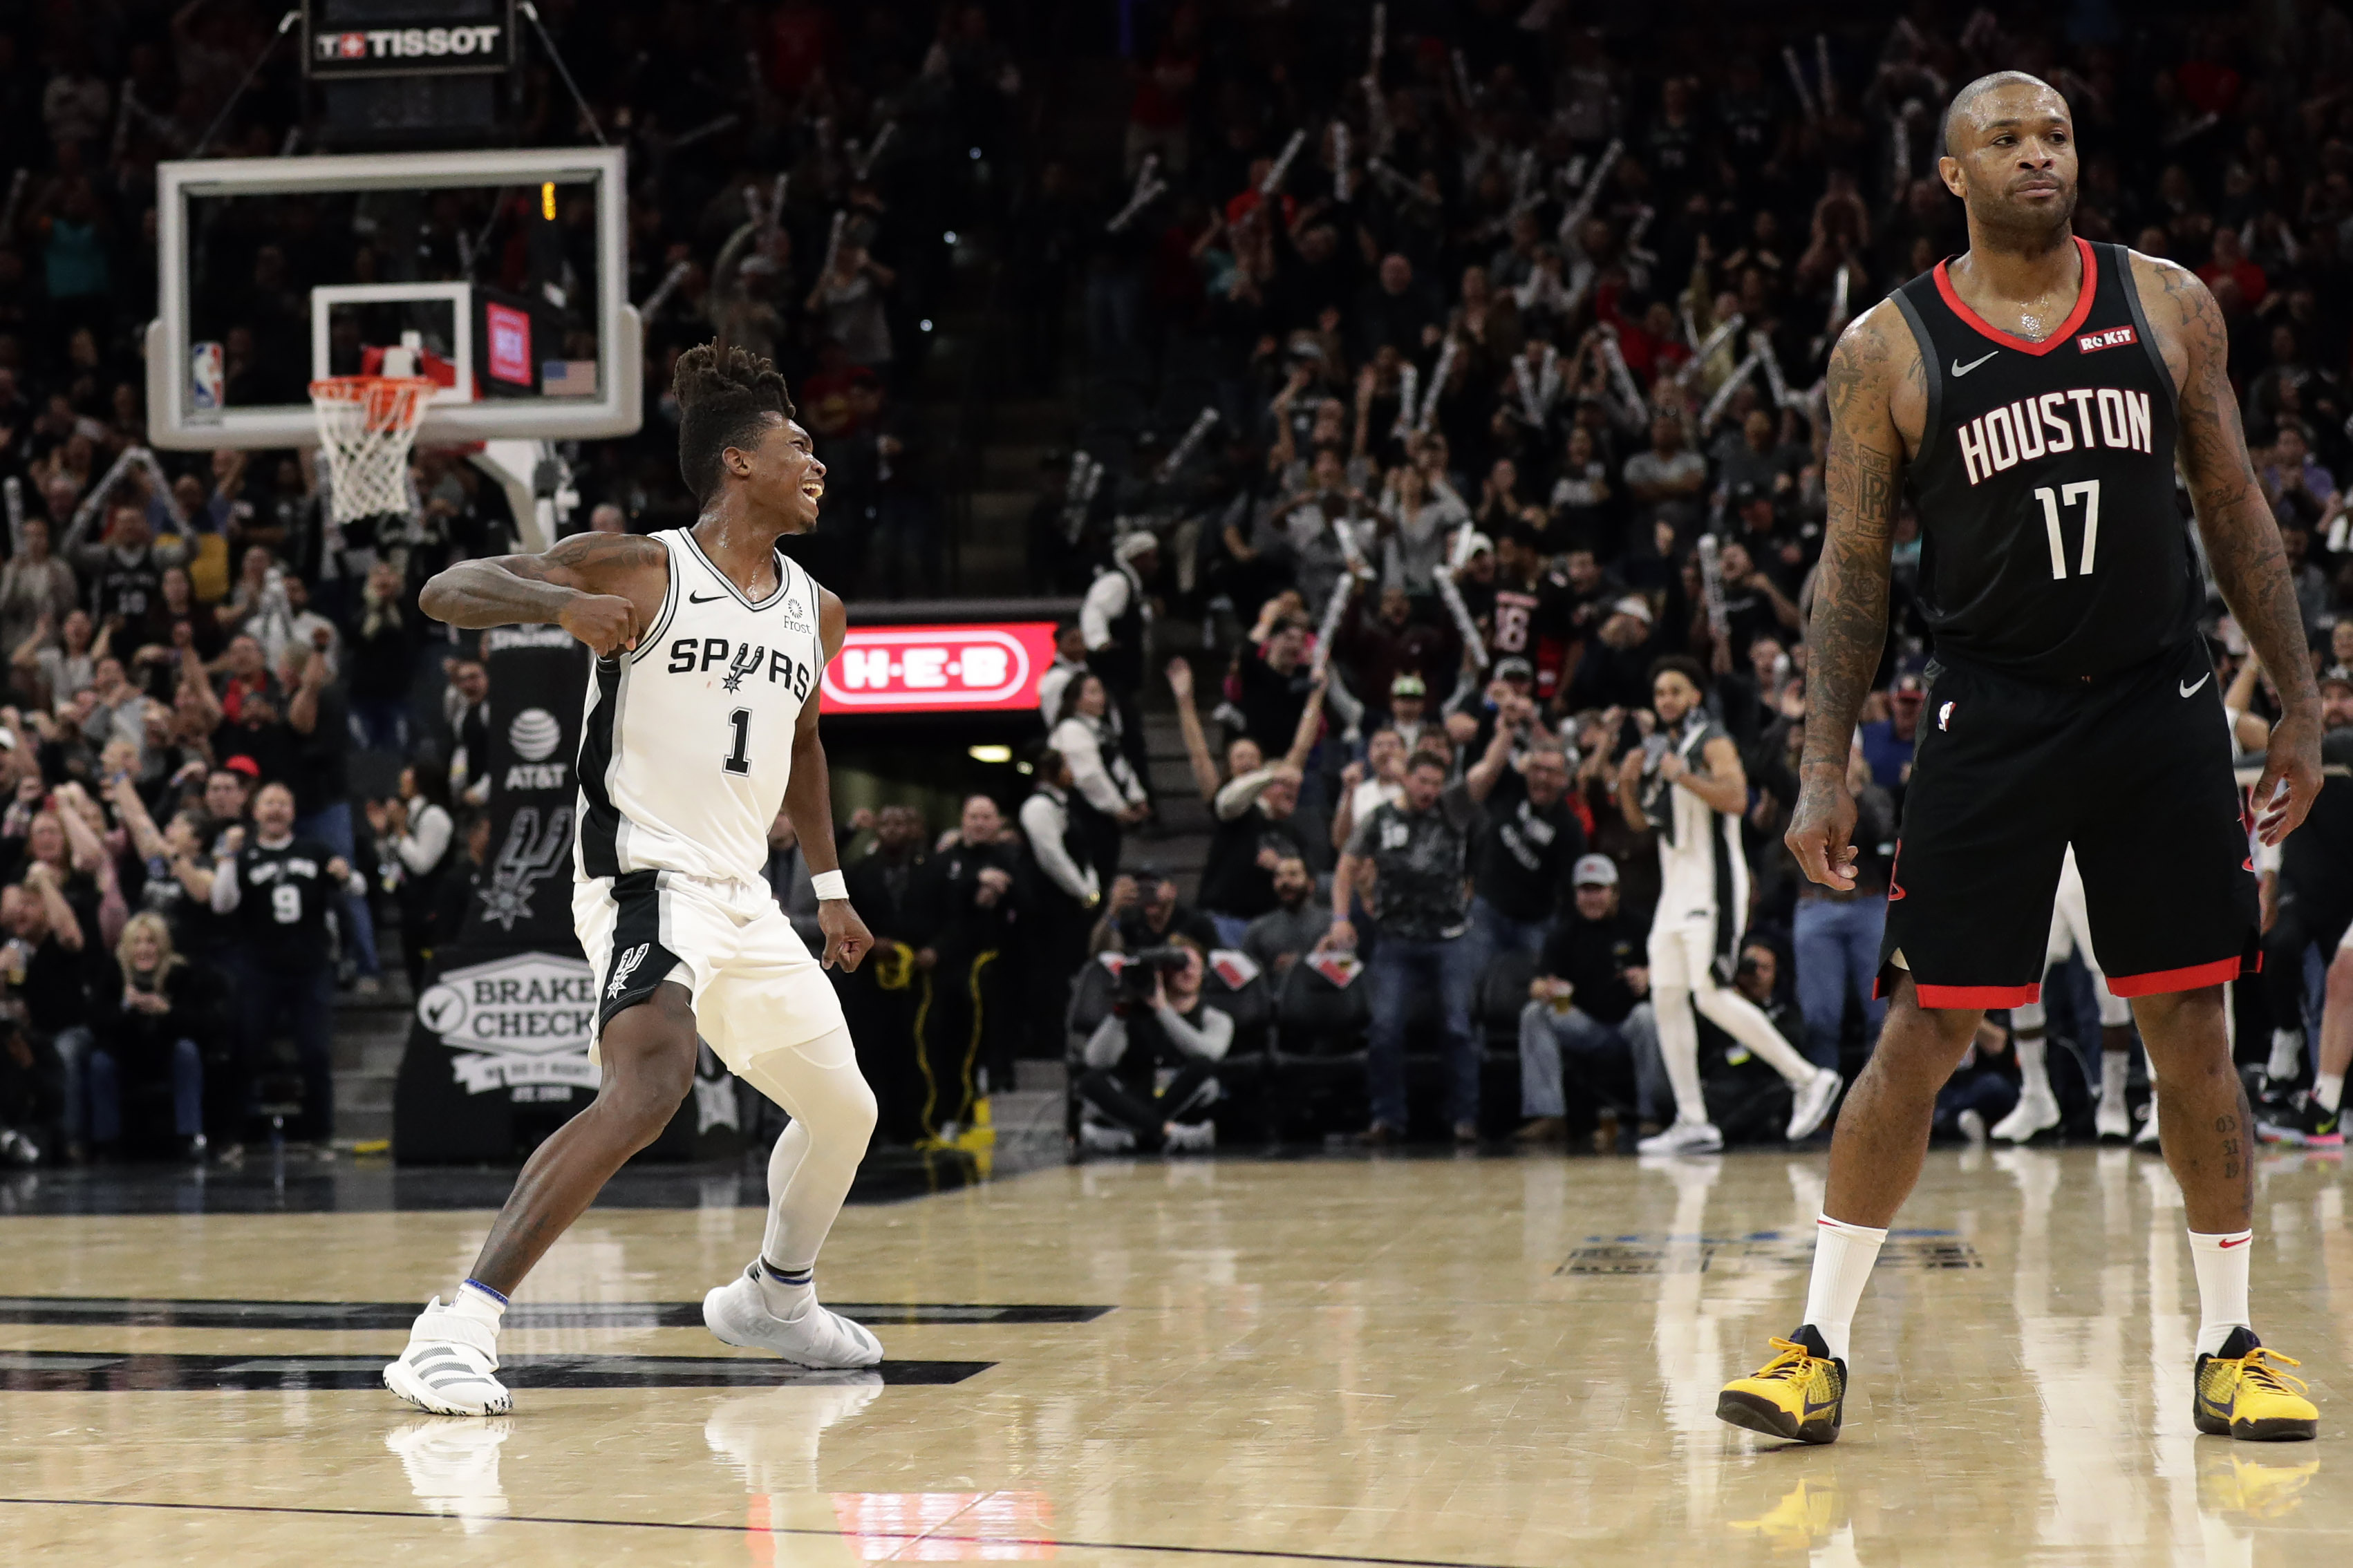 Spurs rally for 2OT win after Harden's disputed non-dunk